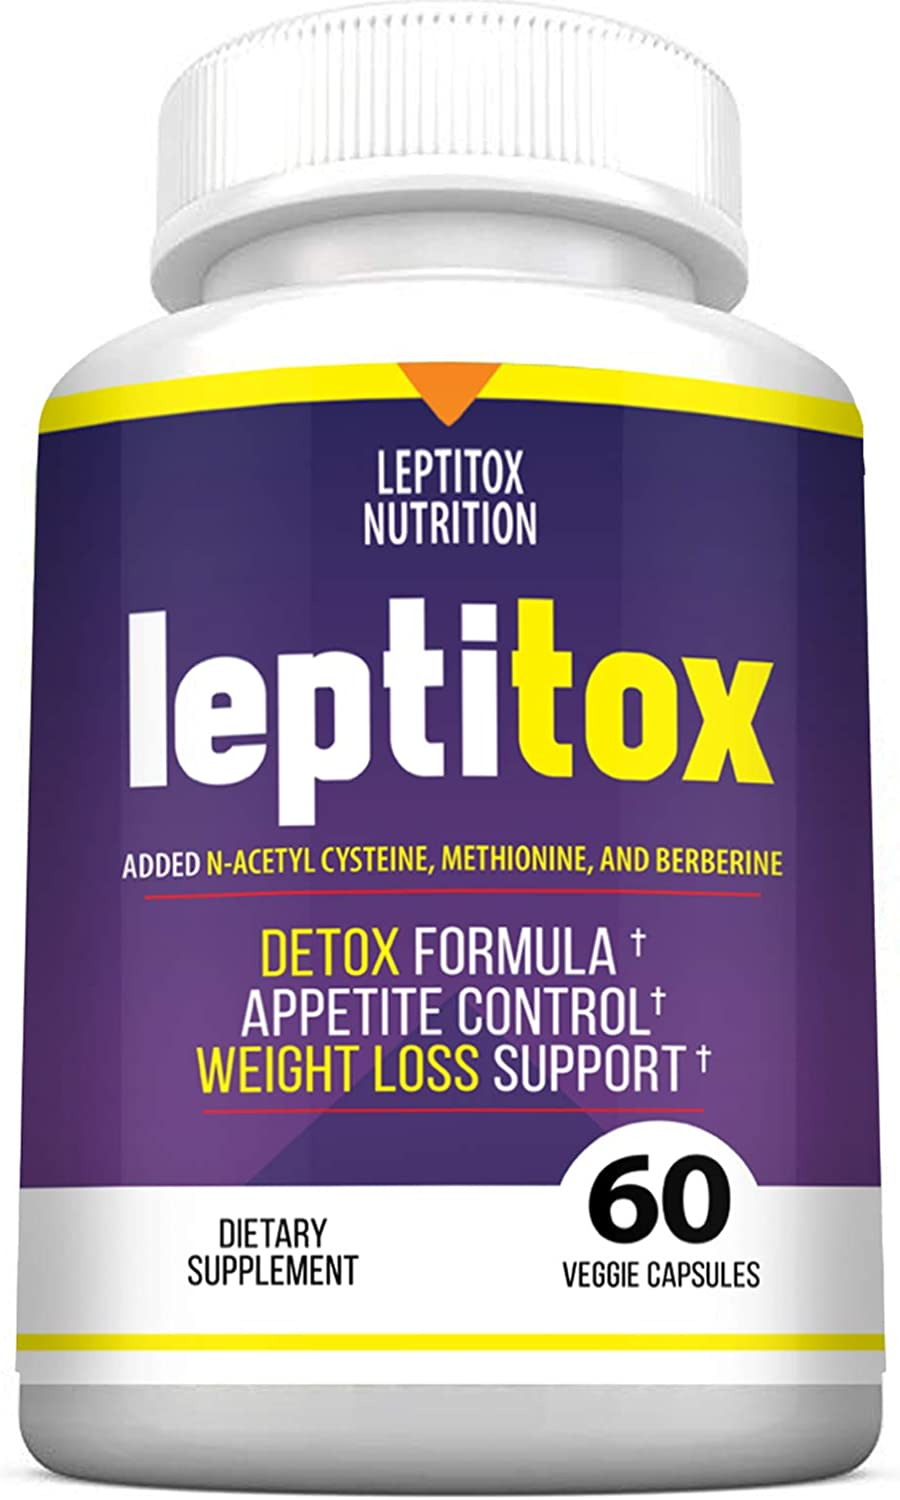 Outlet Weight Loss Leptitox